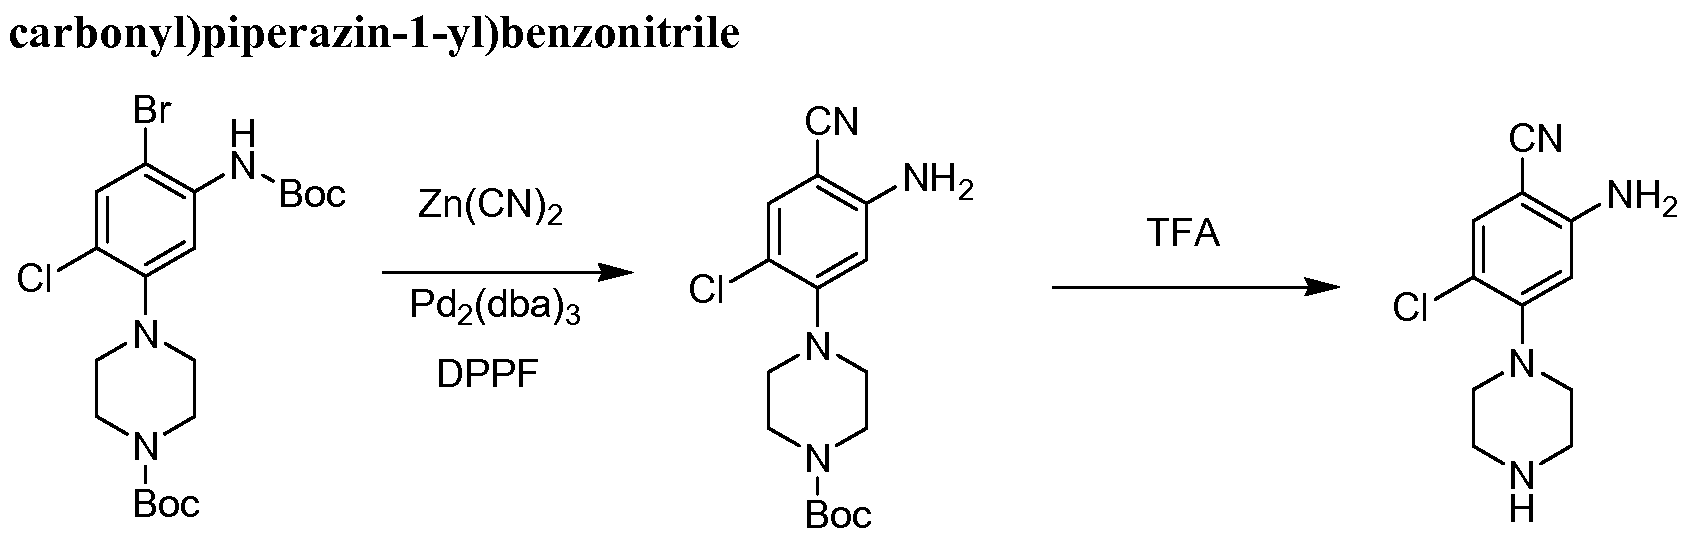 patent wo2012033736a1 novel piperazine analogs as broad spectrum